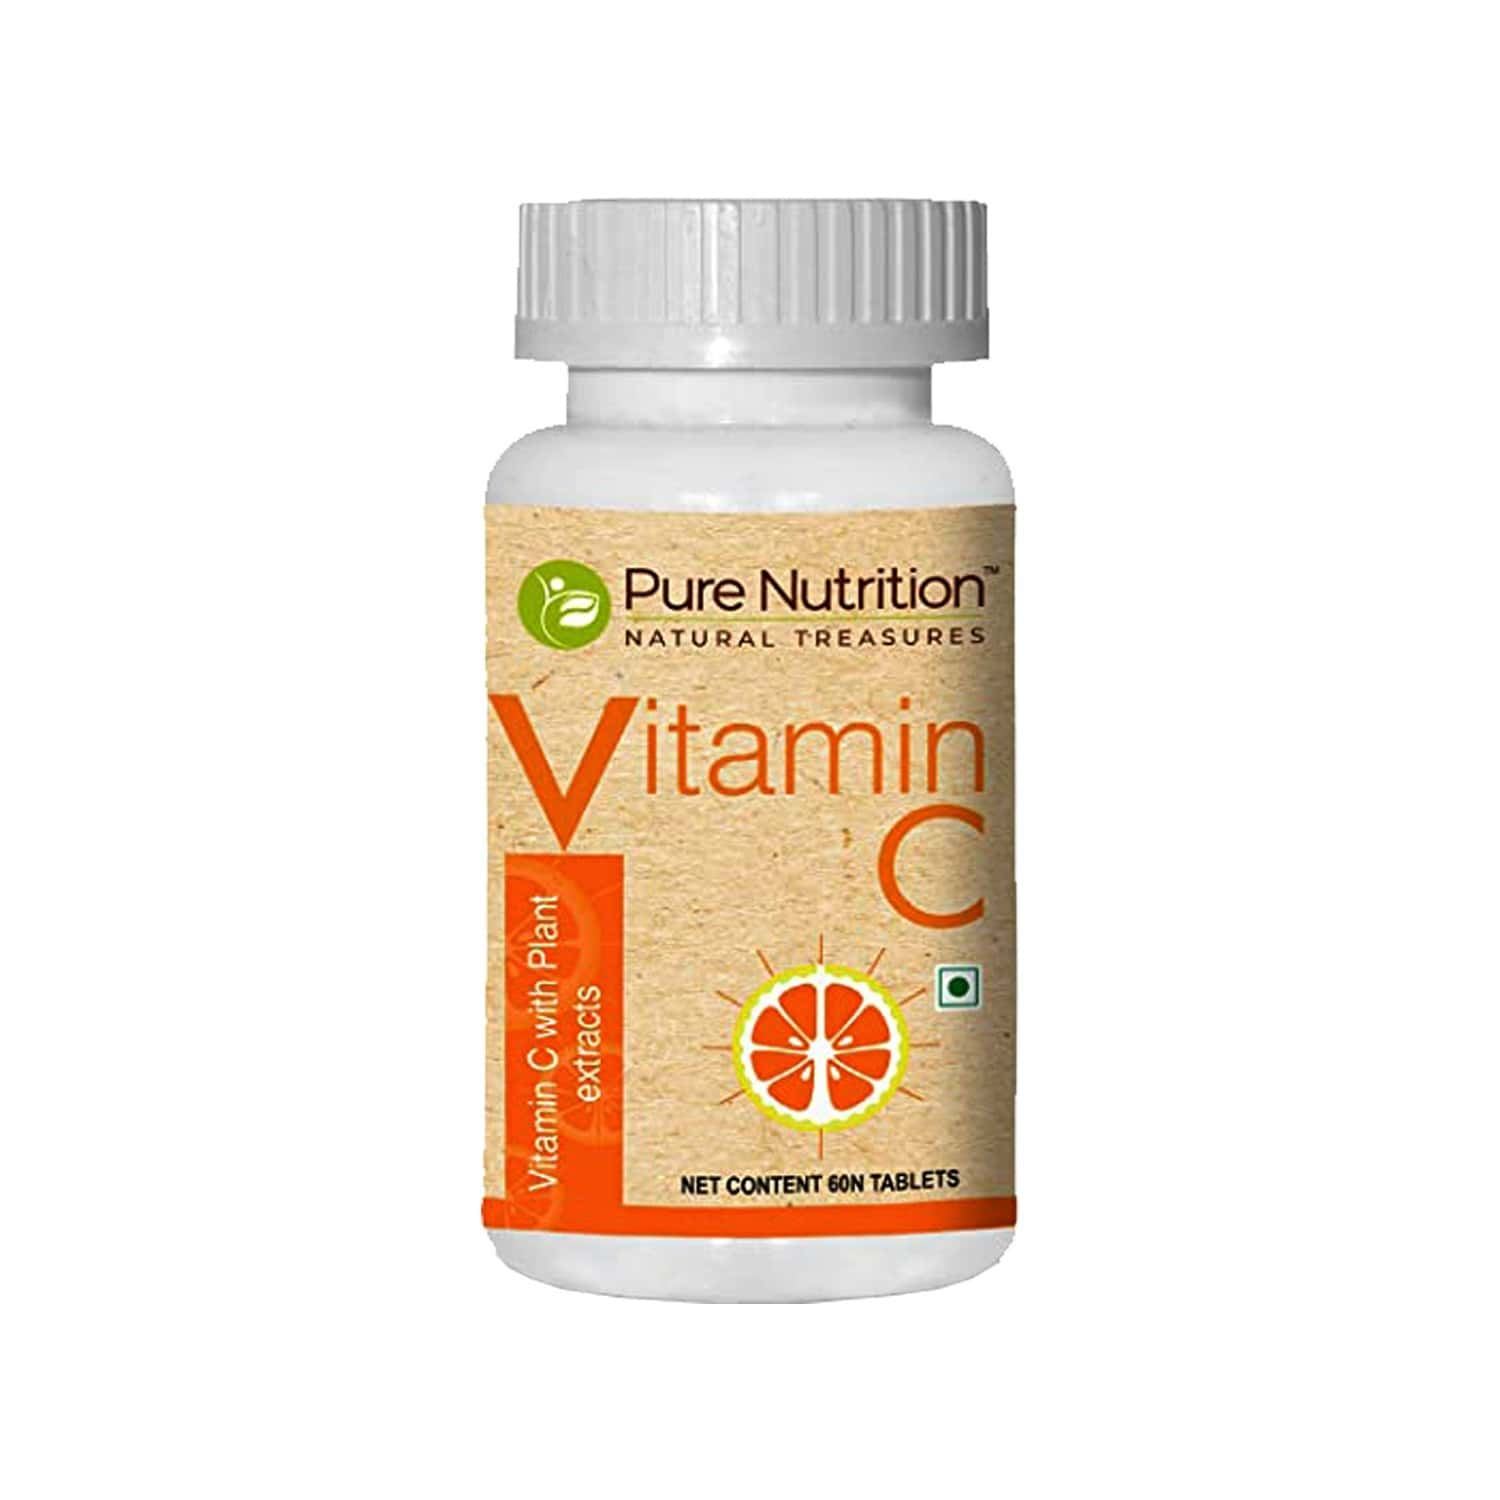 Pure Nutrition Vitamin C 1250mg/serve With Natural Amla And Orange Peel Extract, Antioxidants Rich With Immunity Support - 60 Tablets